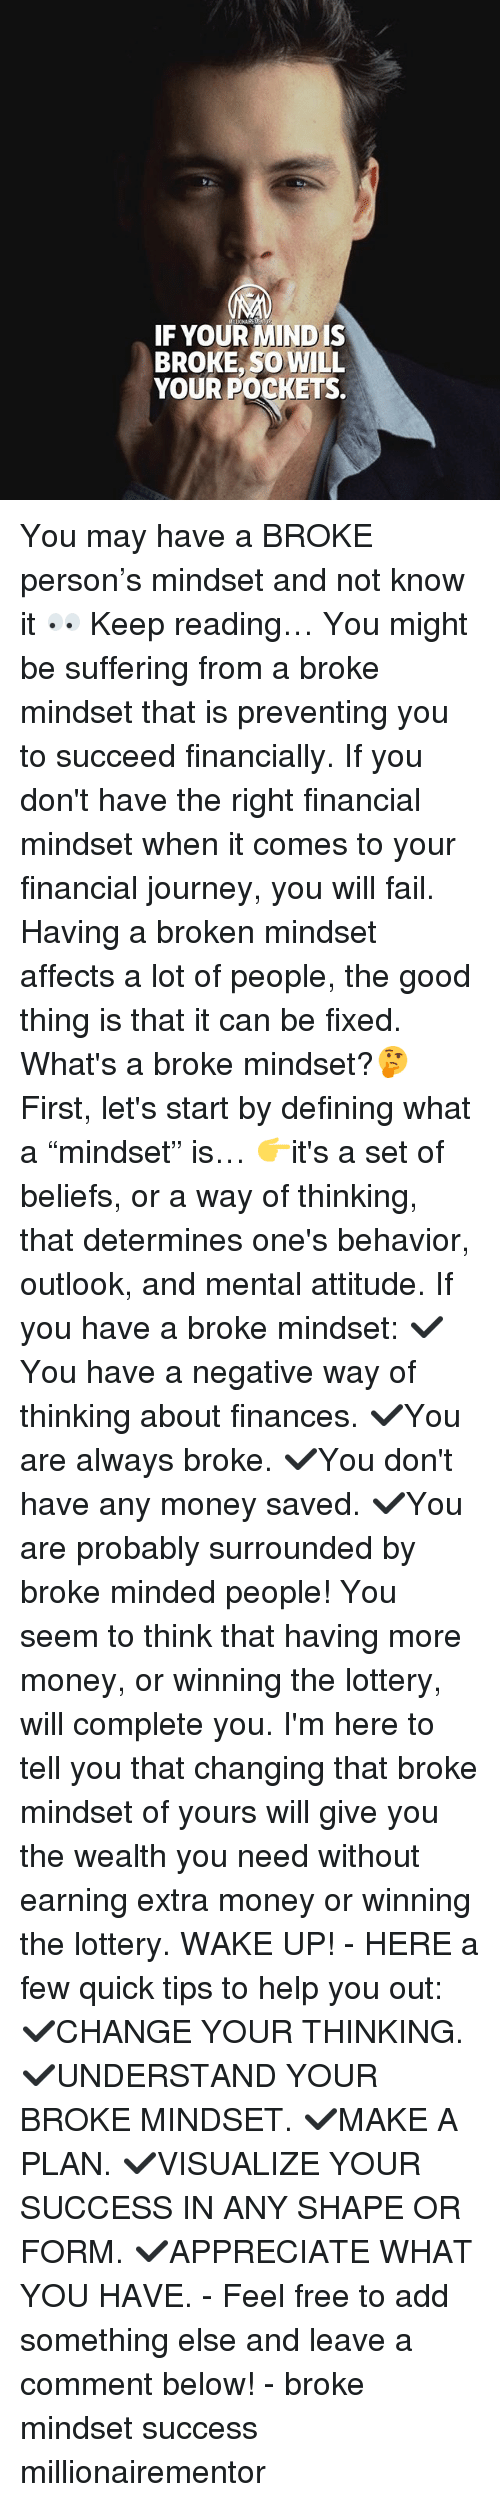 "Fail, Journey, and Lottery: IF YOUR MIND IS  BROKE, SO WILL  YOUR POCKETS. You may have a BROKE person's mindset and not know it 👀 Keep reading… You might be suffering from a broke mindset that is preventing you to succeed financially. If you don't have the right financial mindset when it comes to your financial journey, you will fail. Having a broken mindset affects a lot of people, the good thing is that it can be fixed. What's a broke mindset?🤔 First, let's start by defining what a ""mindset"" is… 👉it's a set of beliefs, or a way of thinking, that determines one's behavior, outlook, and mental attitude. If you have a broke mindset: ✔️You have a negative way of thinking about finances. ✔️You are always broke. ✔️You don't have any money saved. ✔️You are probably surrounded by broke minded people! You seem to think that having more money, or winning the lottery, will complete you. I'm here to tell you that changing that broke mindset of yours will give you the wealth you need without earning extra money or winning the lottery. WAKE UP! - HERE a few quick tips to help you out: ✔️CHANGE YOUR THINKING. ✔️UNDERSTAND YOUR BROKE MINDSET. ✔️MAKE A PLAN. ✔️VISUALIZE YOUR SUCCESS IN ANY SHAPE OR FORM. ✔️APPRECIATE WHAT YOU HAVE. - Feel free to add something else and leave a comment below! - broke mindset success millionairementor"